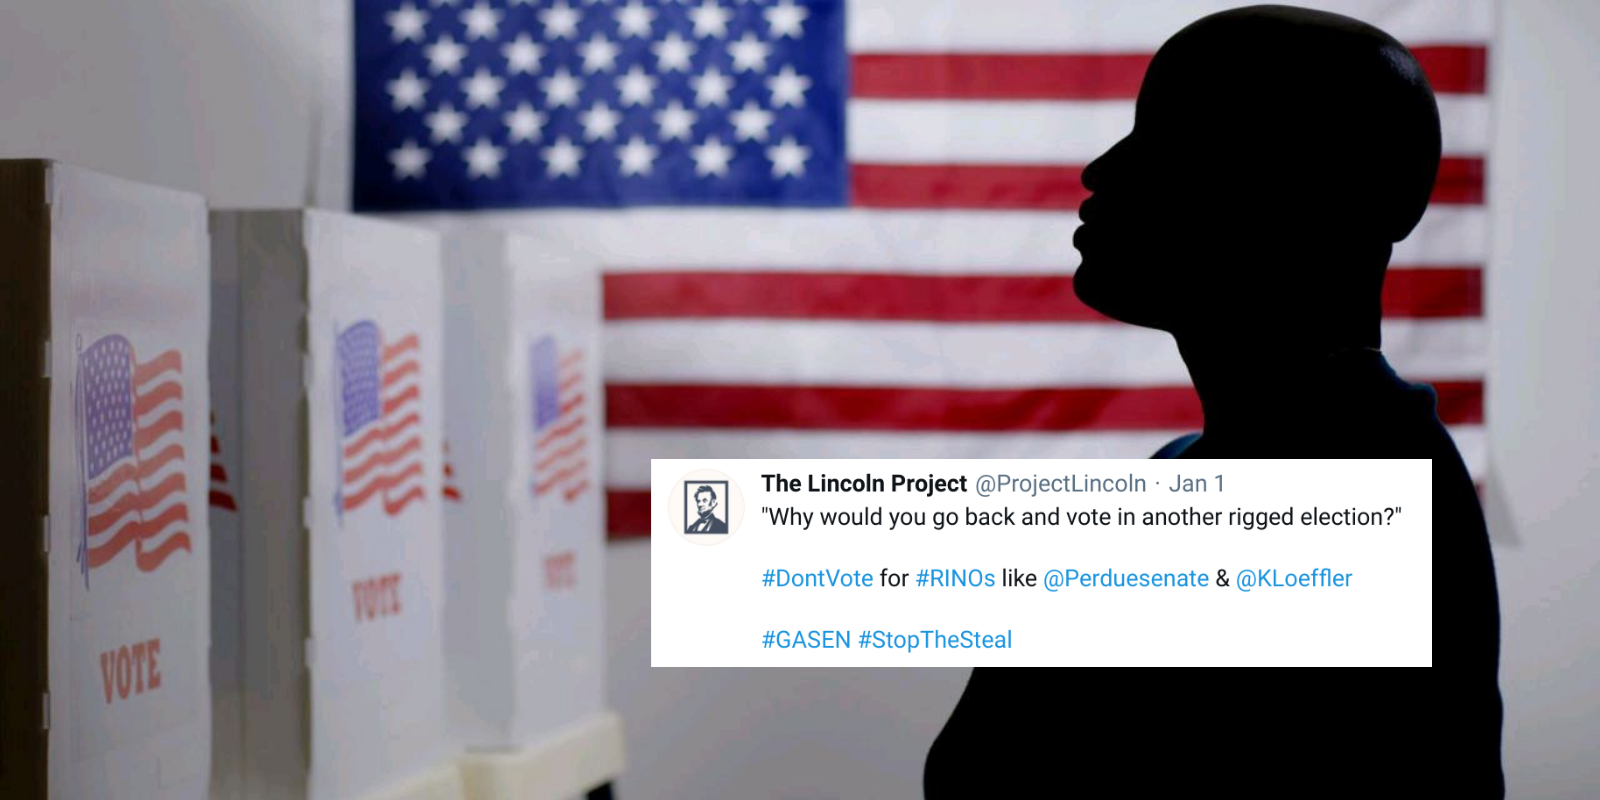 REVEALED: Democrat operatives including Lincoln Project spread disinformation to suppress the conservative vote